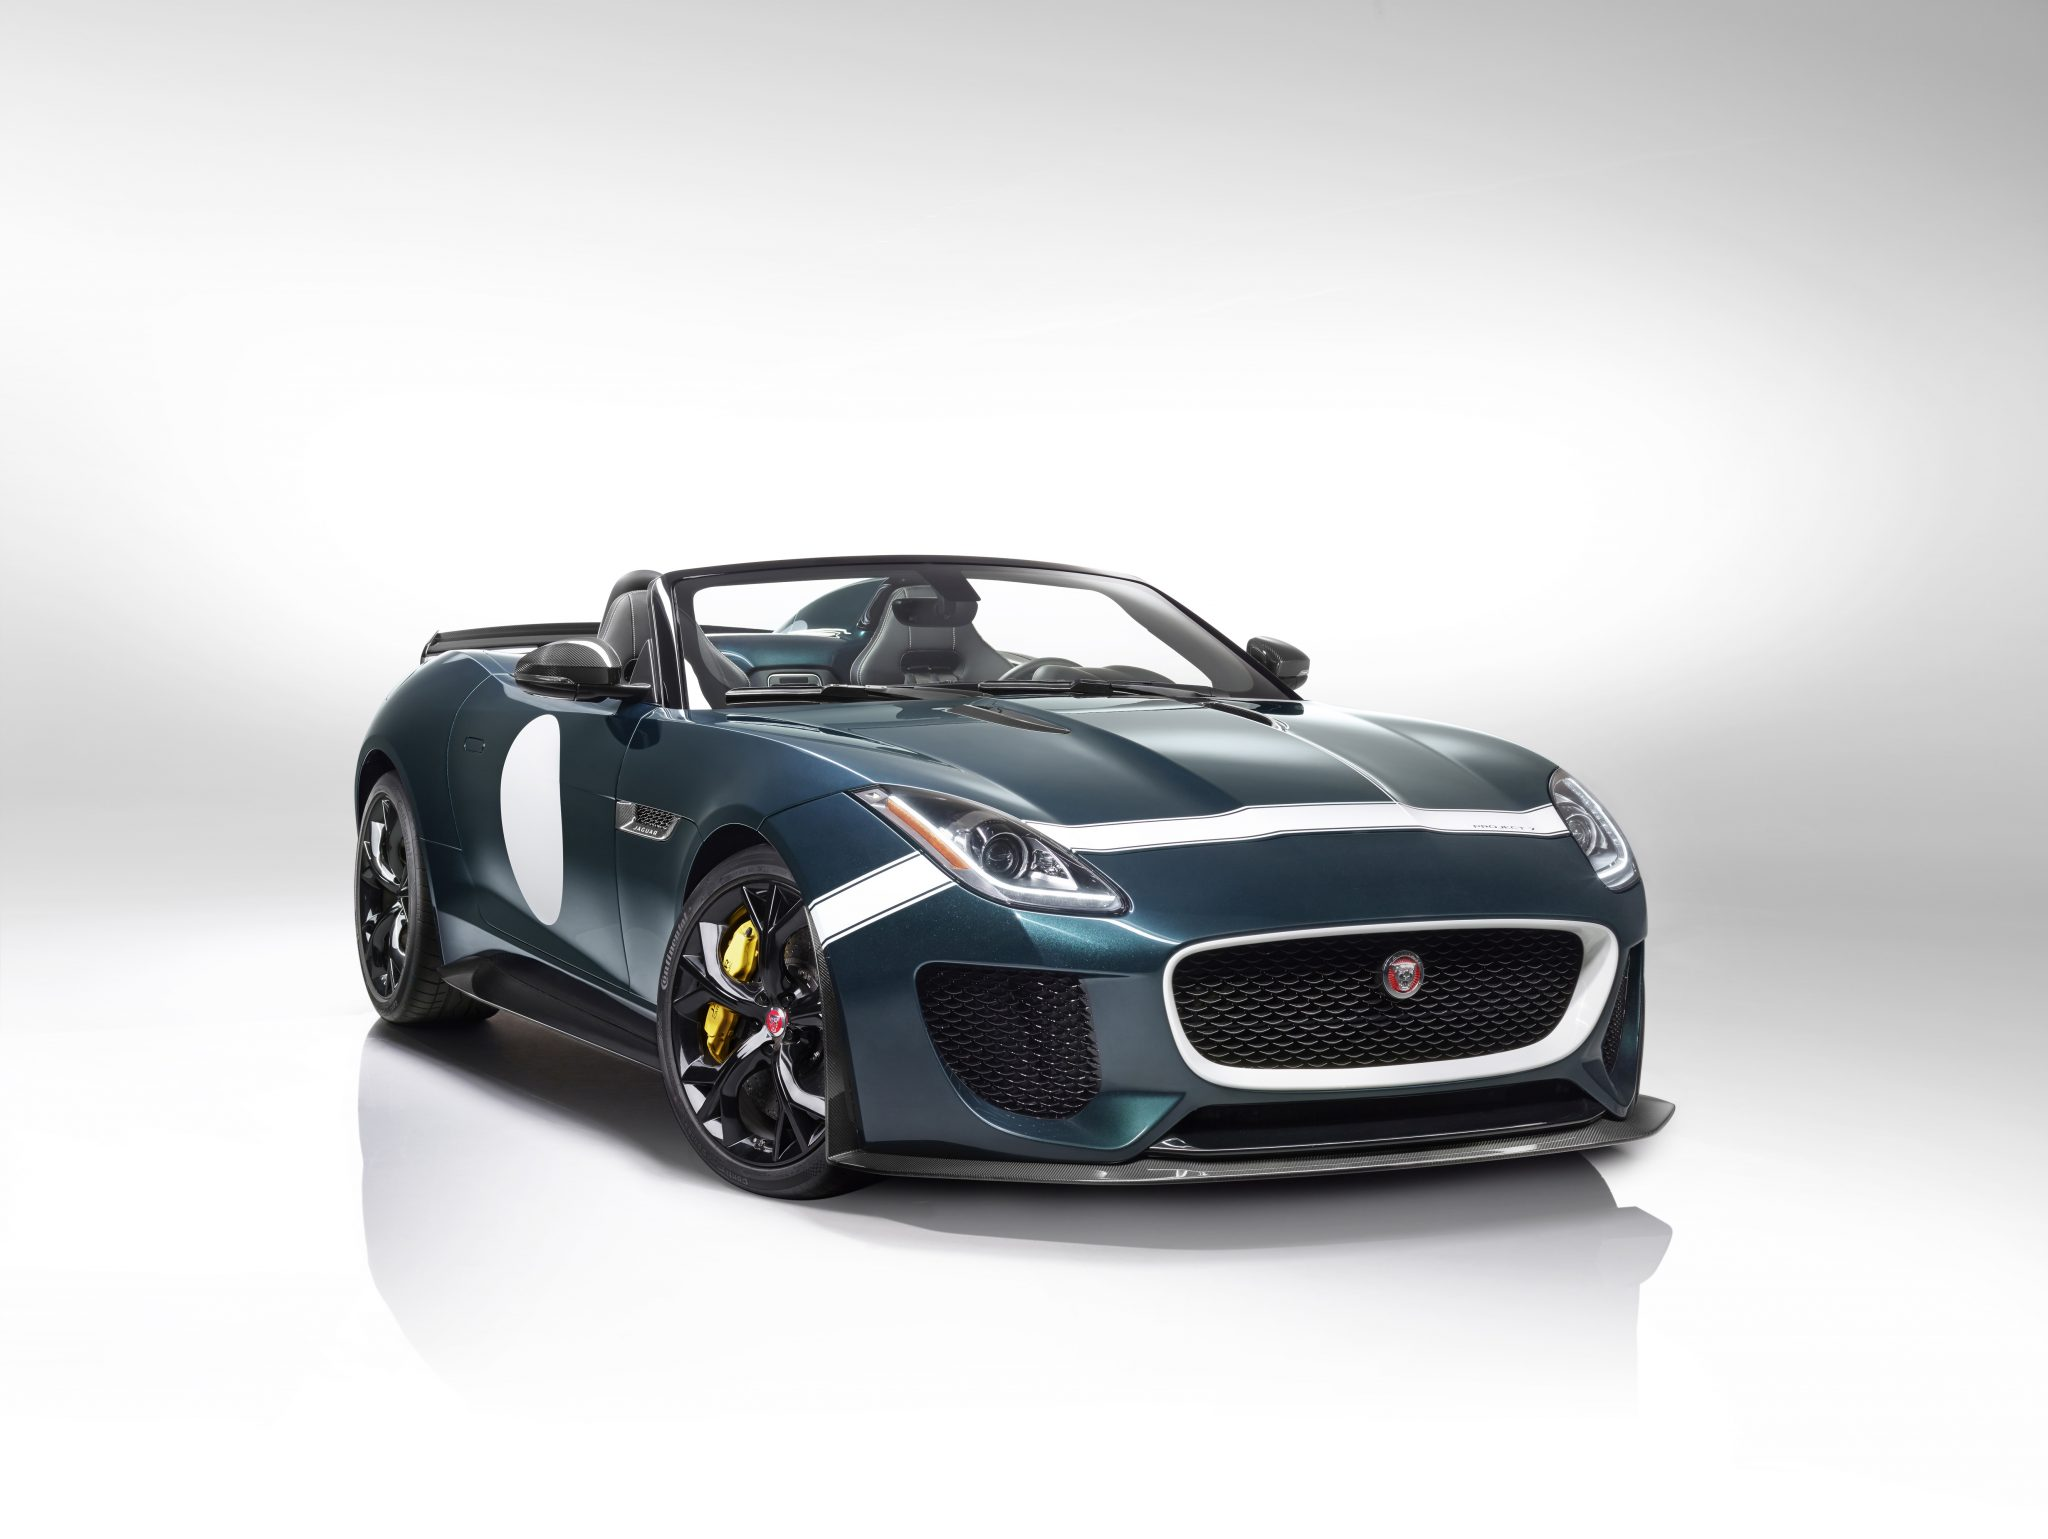 Jaguar Cars News Jaguar Cars News F Type Project 7 Confirmed For Production